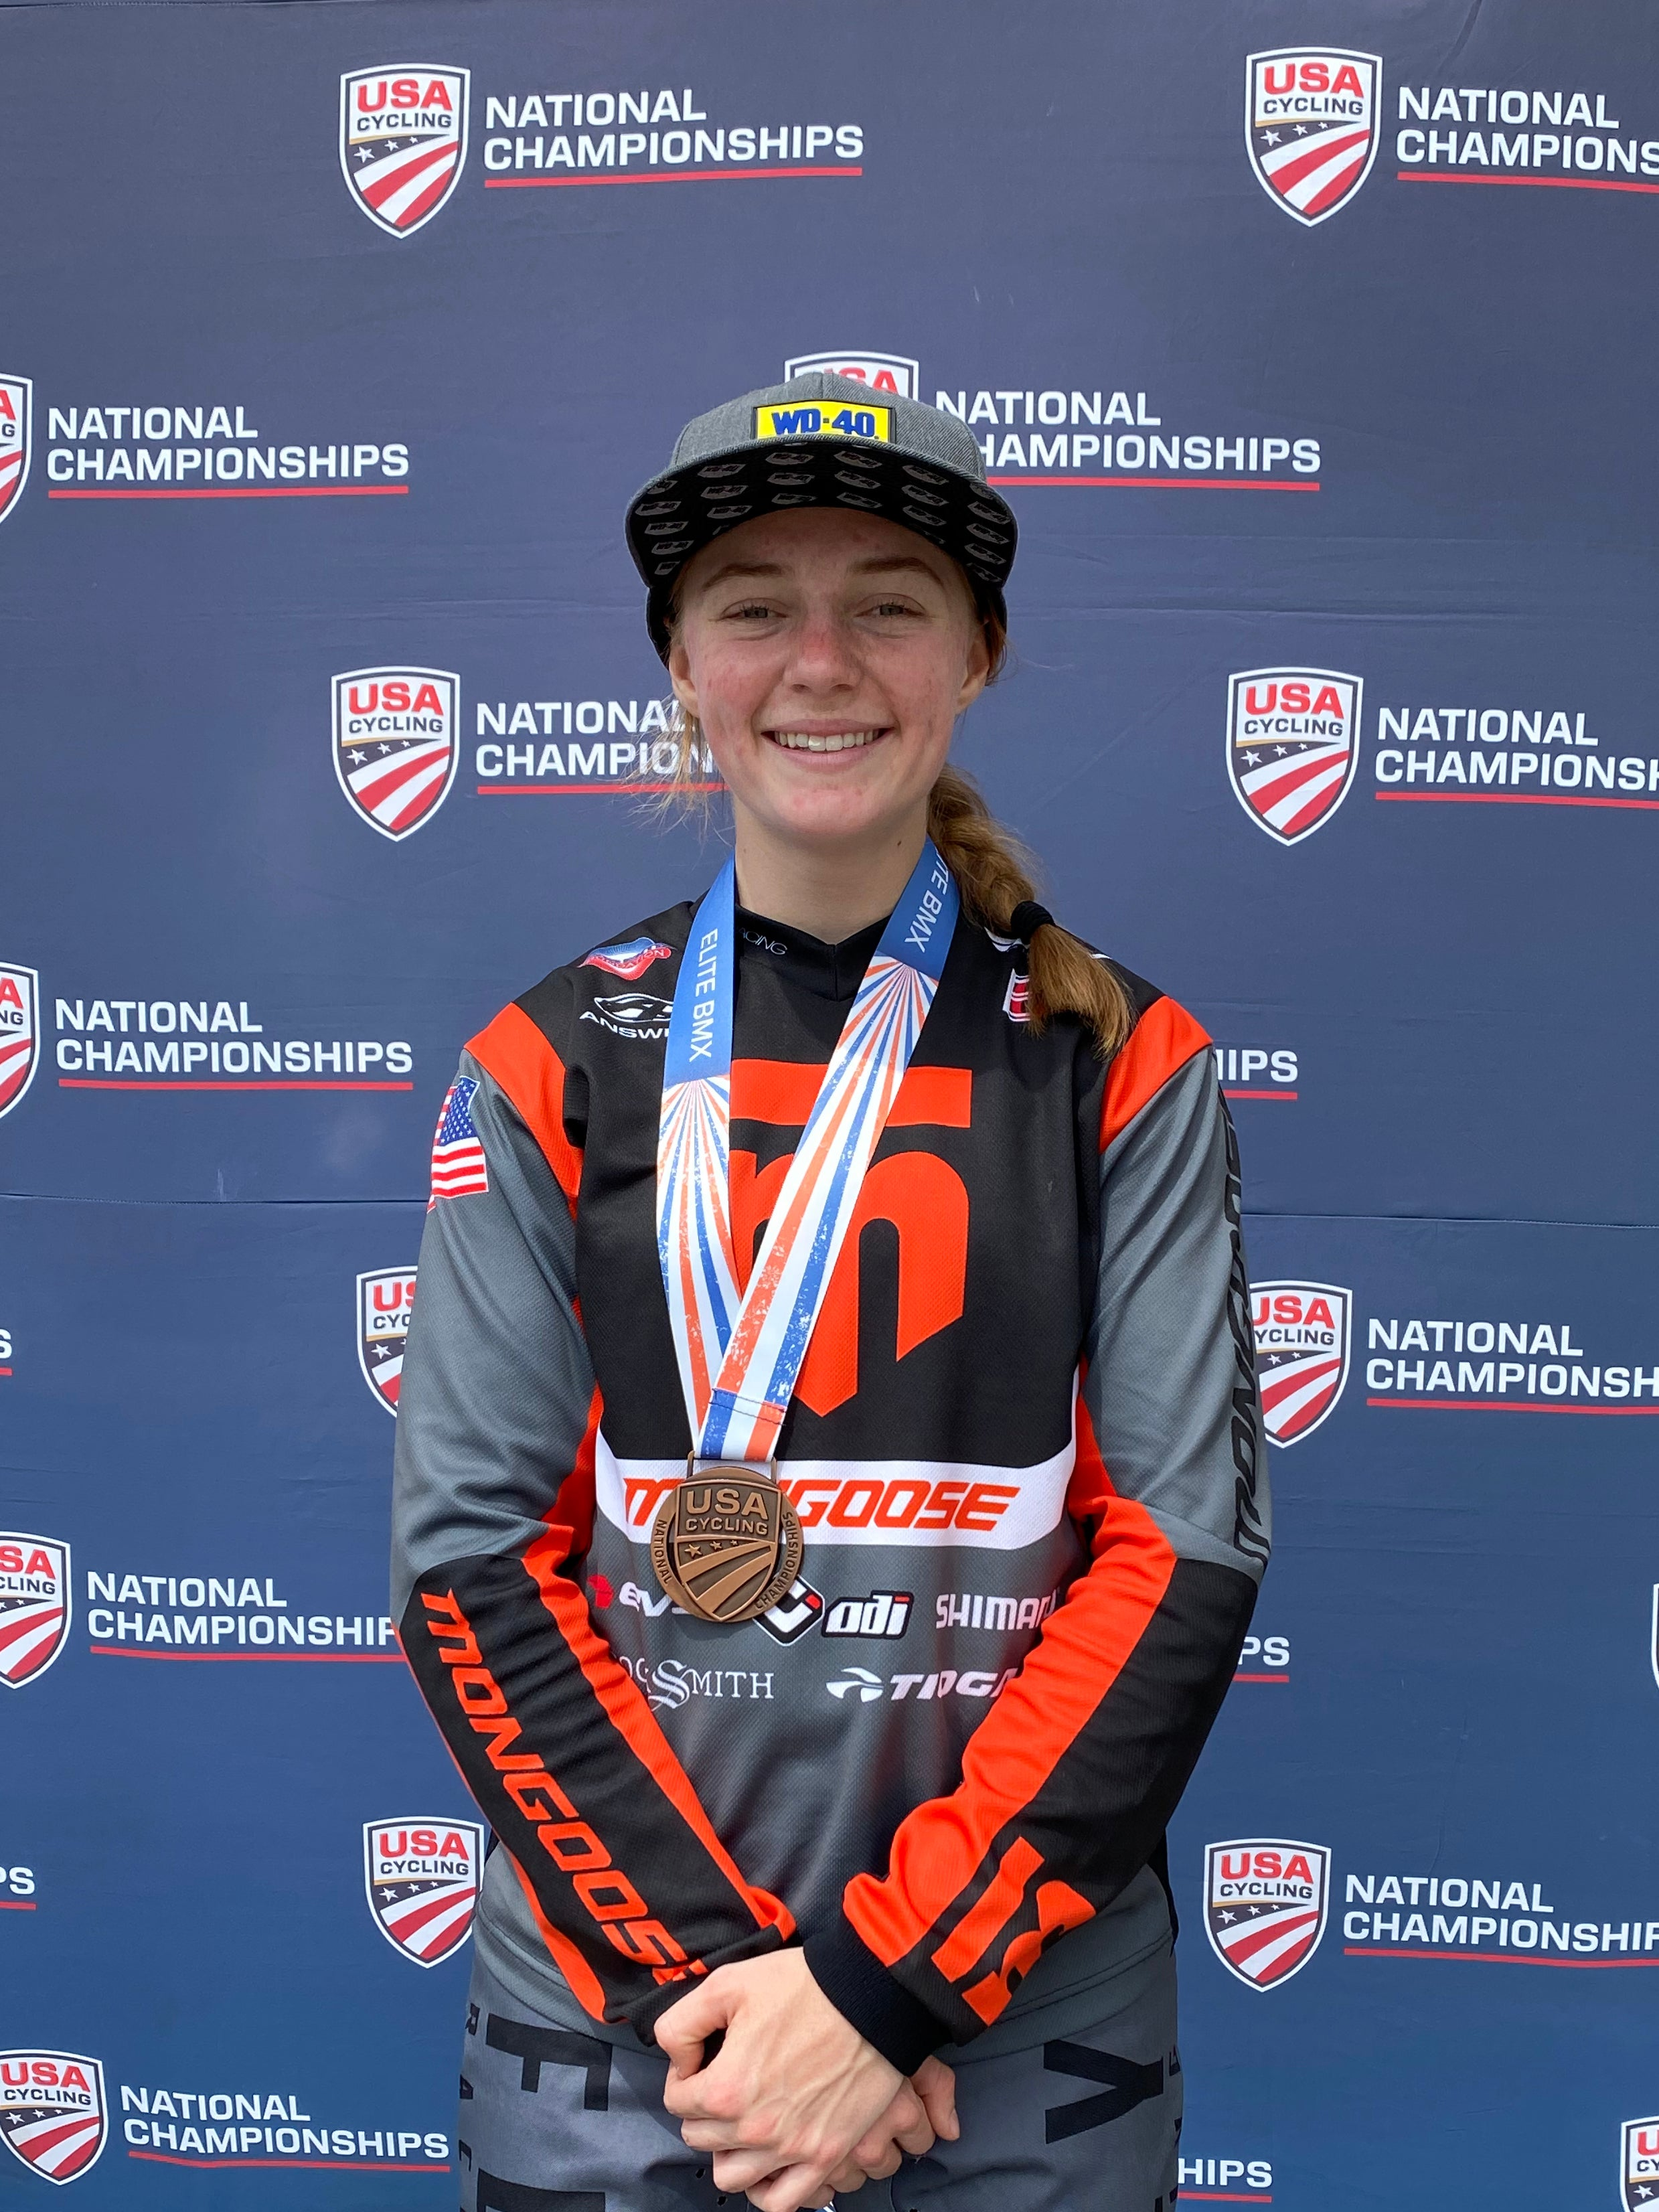 P-Nut takes 3rd at Rock Hill Nationals